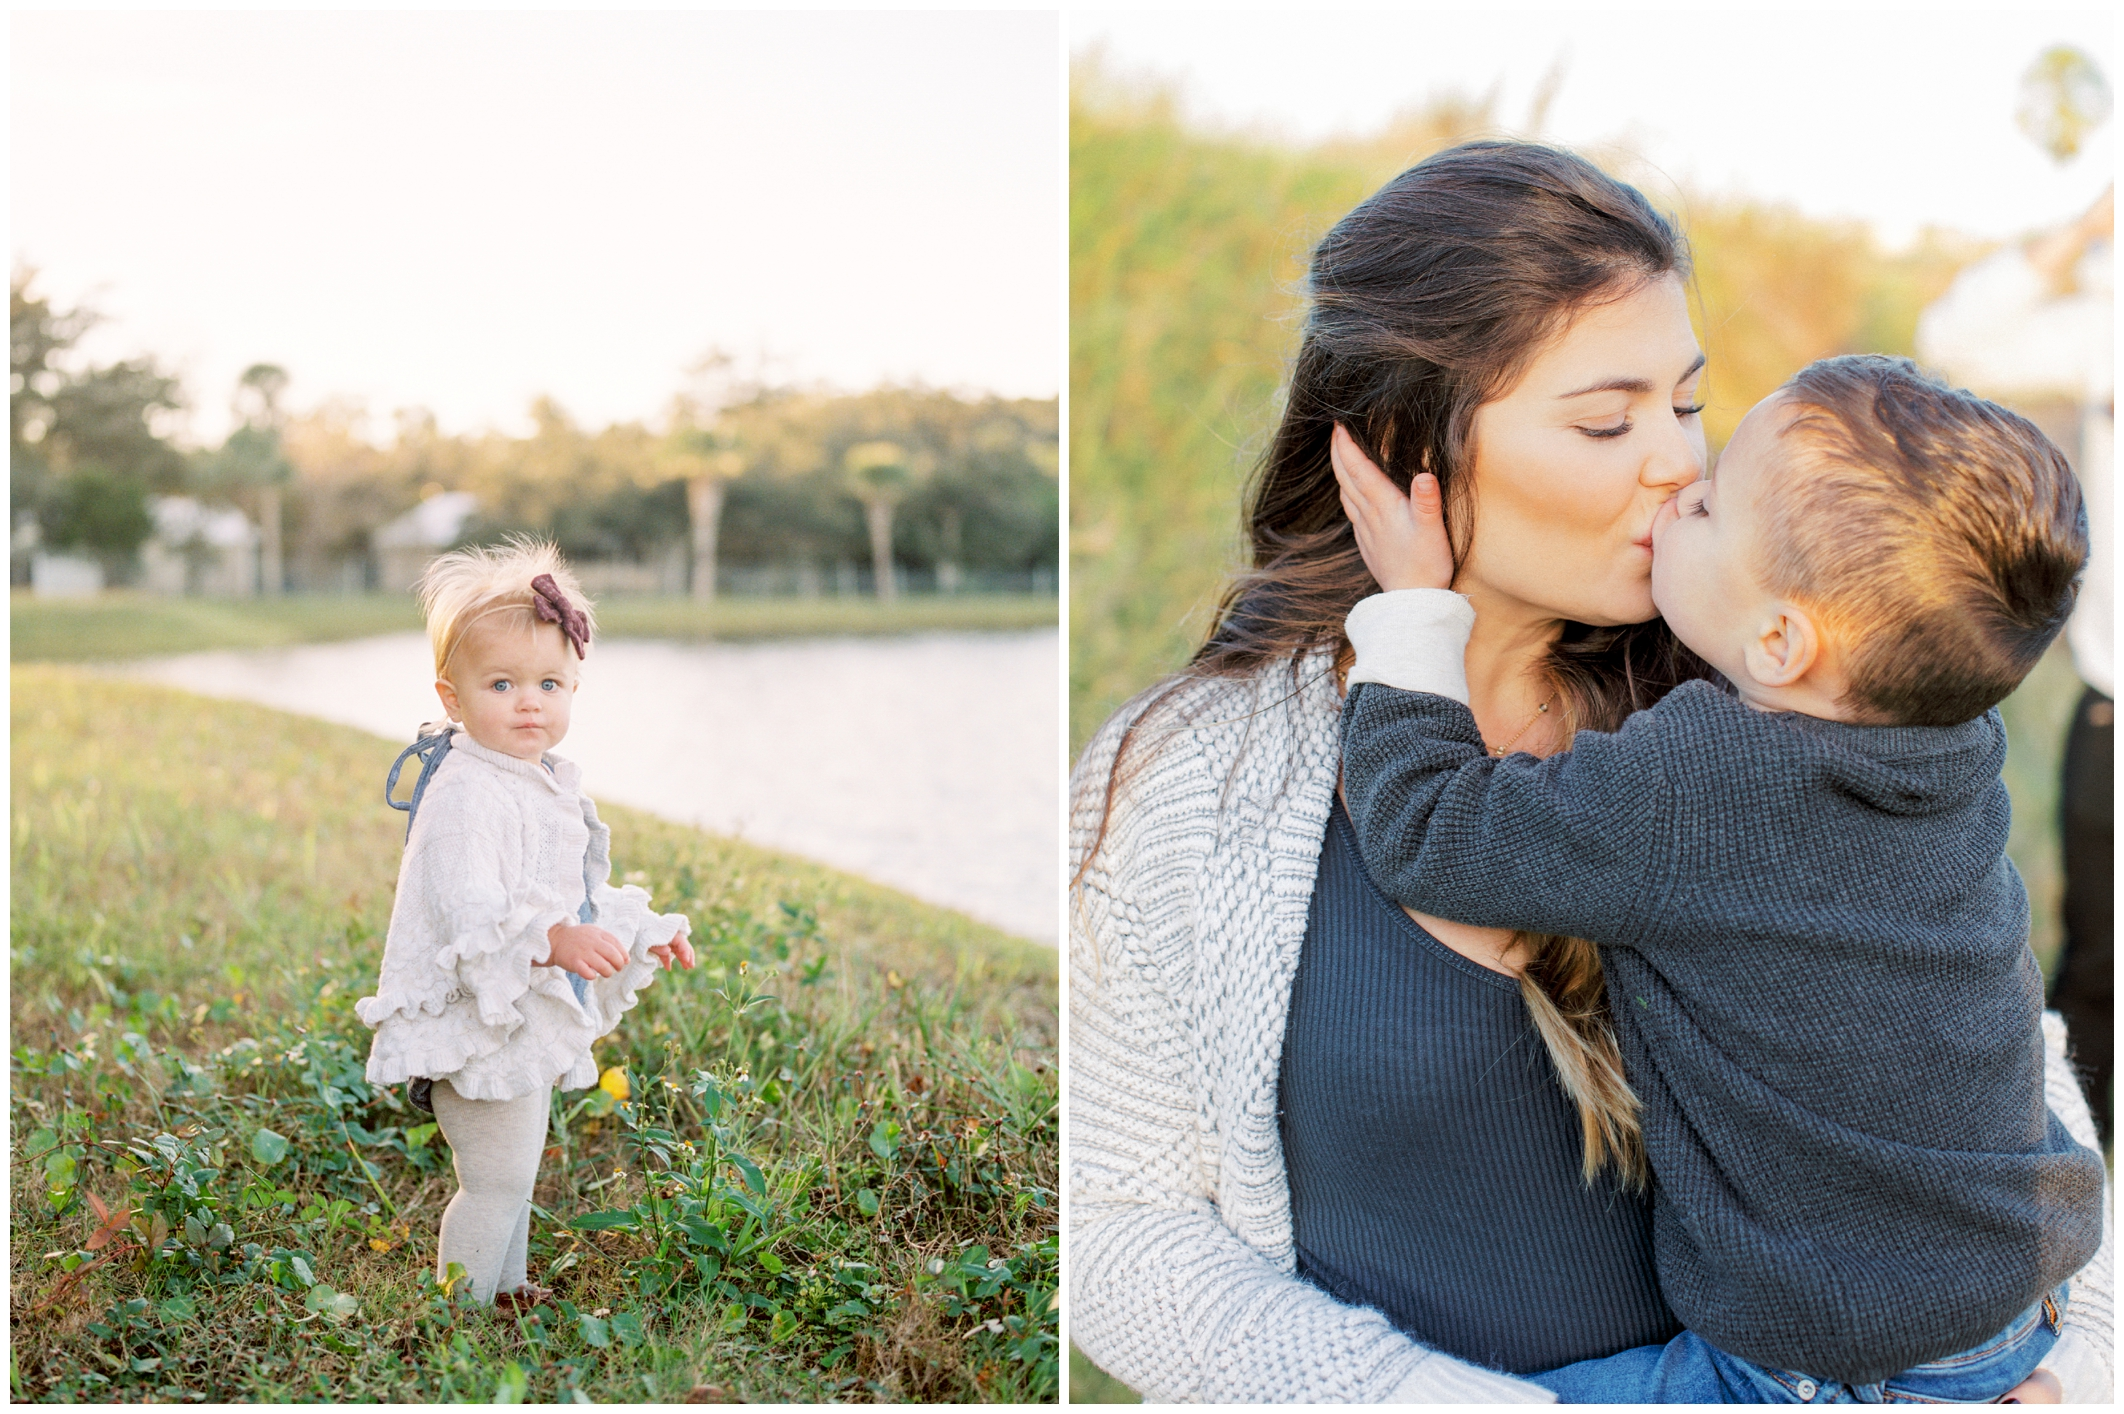 Lisa Silva Photography- Ponte Vedra Beach, St. Augustine and Jacksonville, Florida Fine Art Film Destination Wedding Photography- Family Lifestyle Session in St. Augustine_007a.jpg